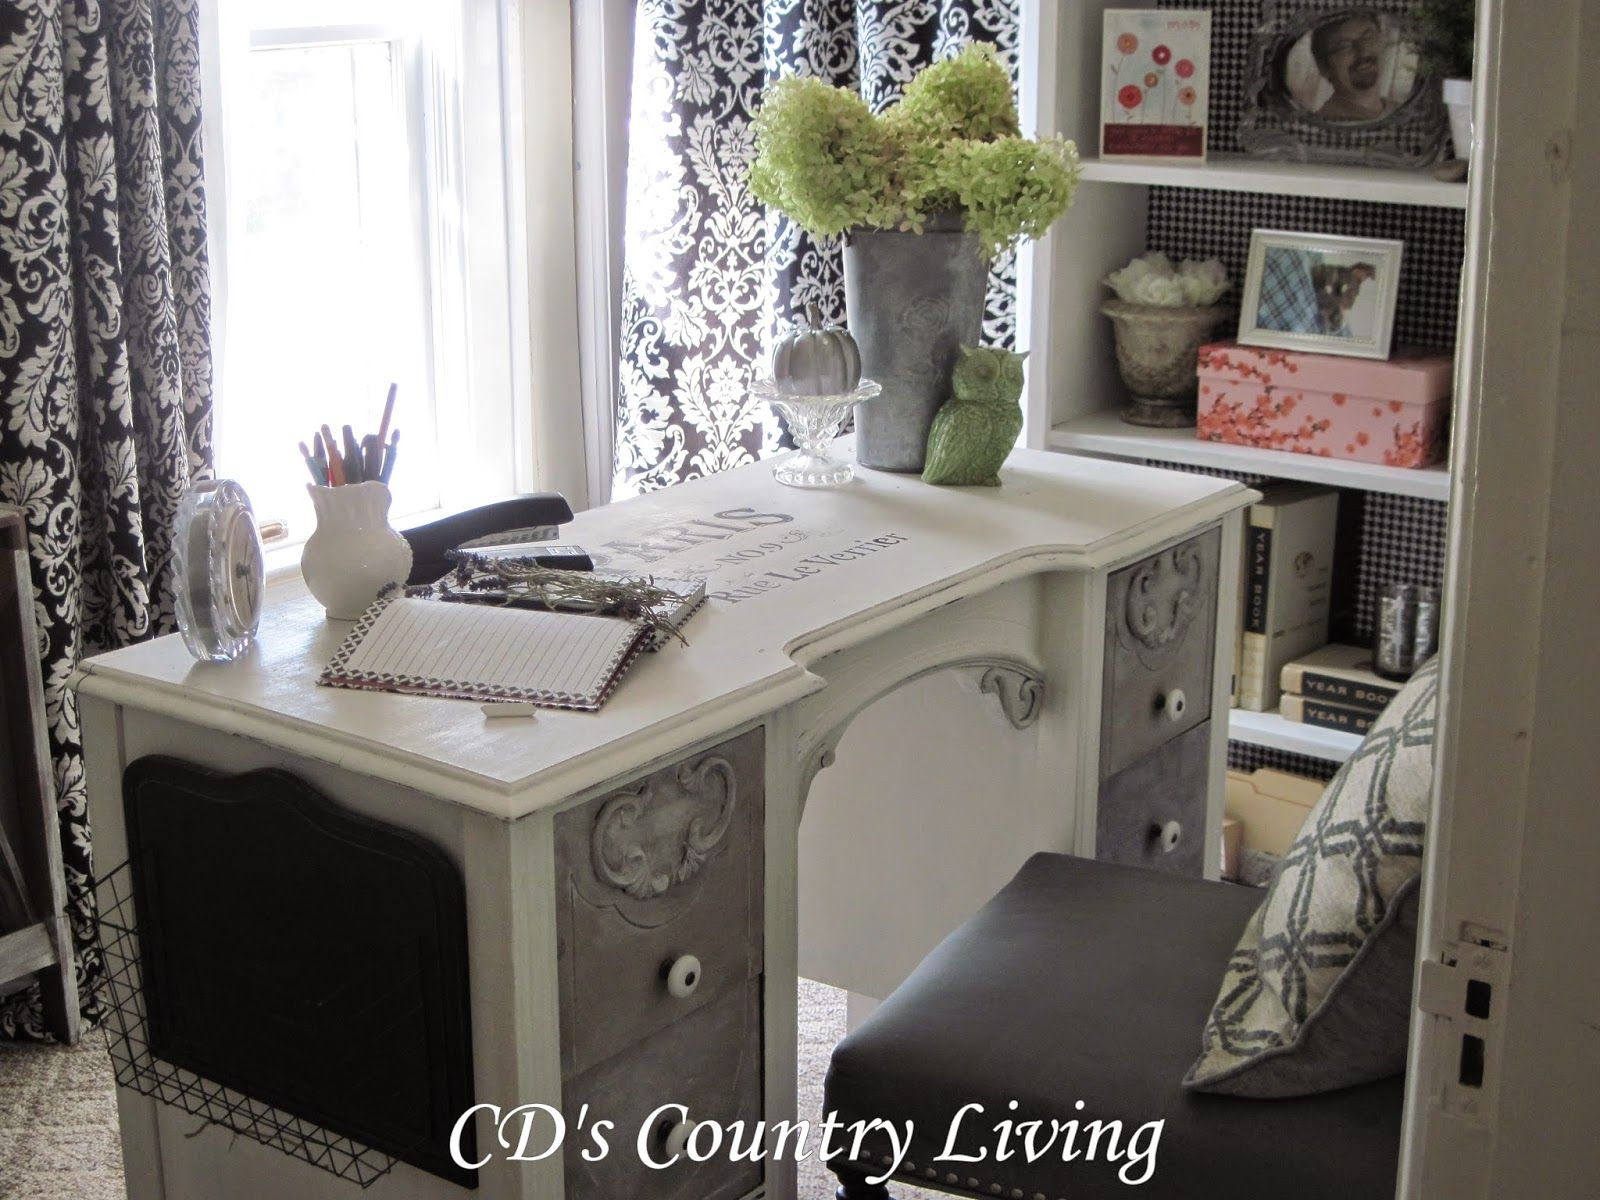 CD's Country Living: Office Makeover-Final Reveal!